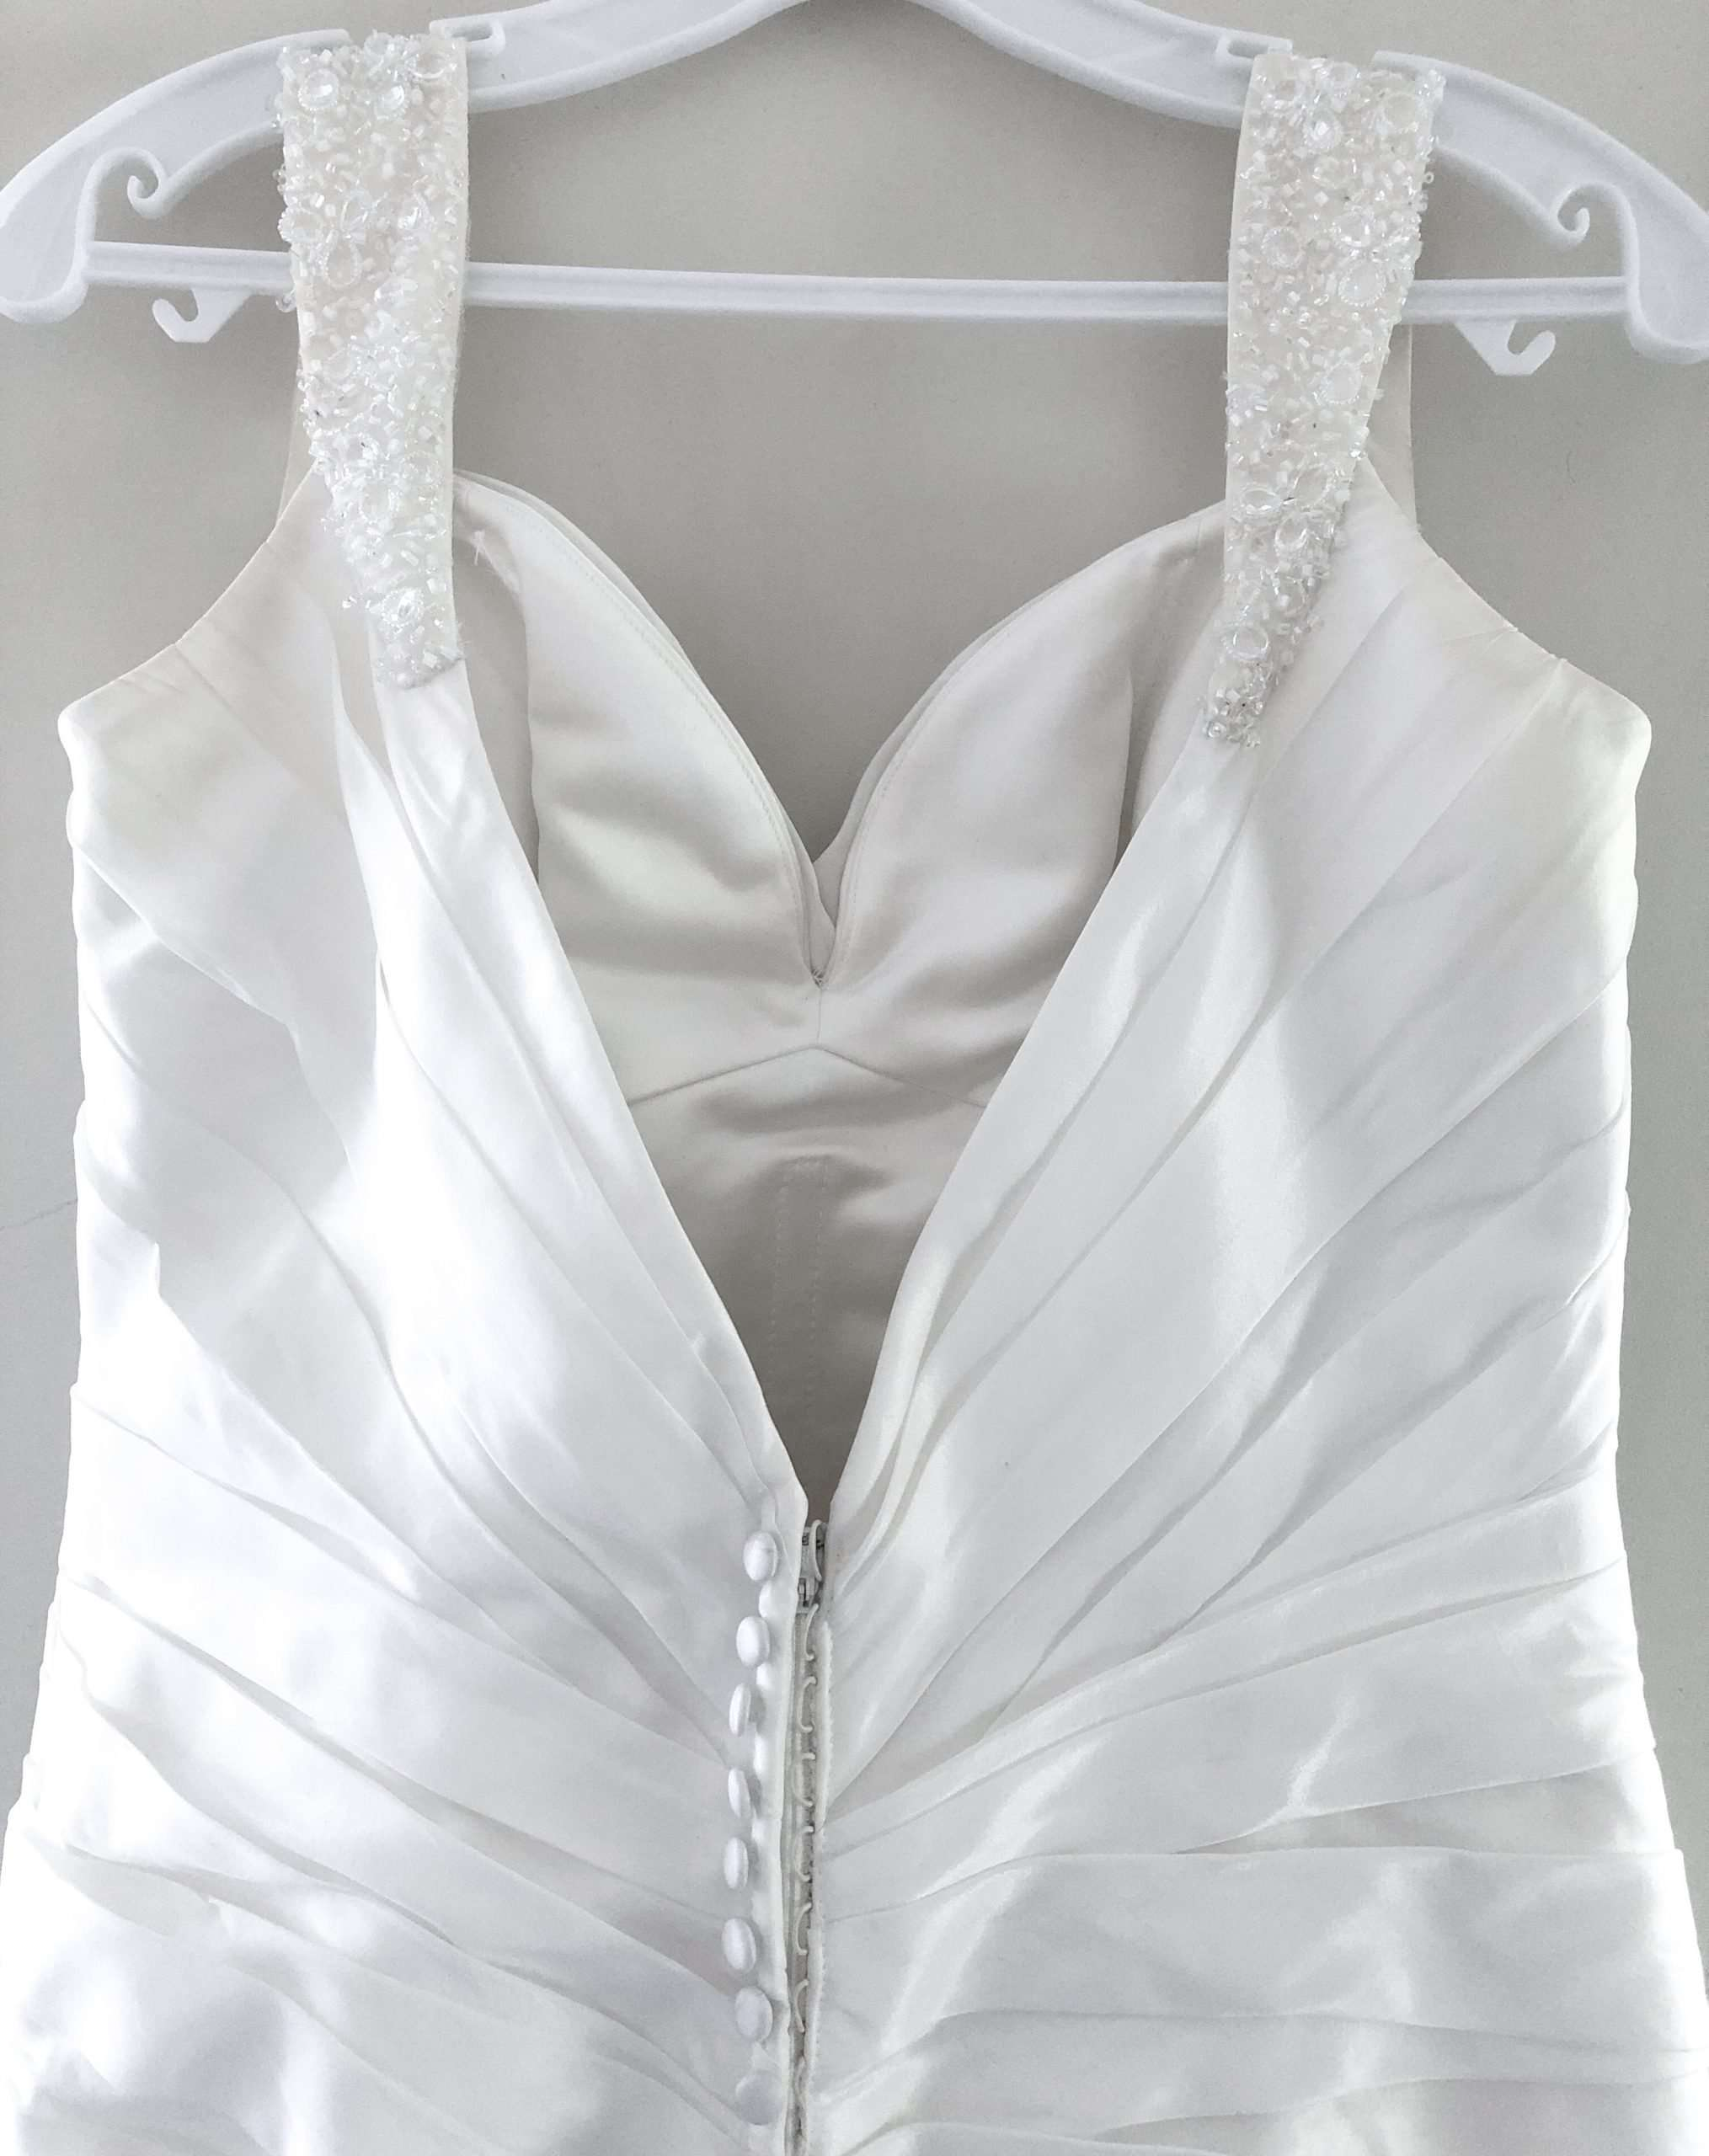 The back of Lisa's wedding dress on the hander. The dress has sparkly straps and is low cut at the back